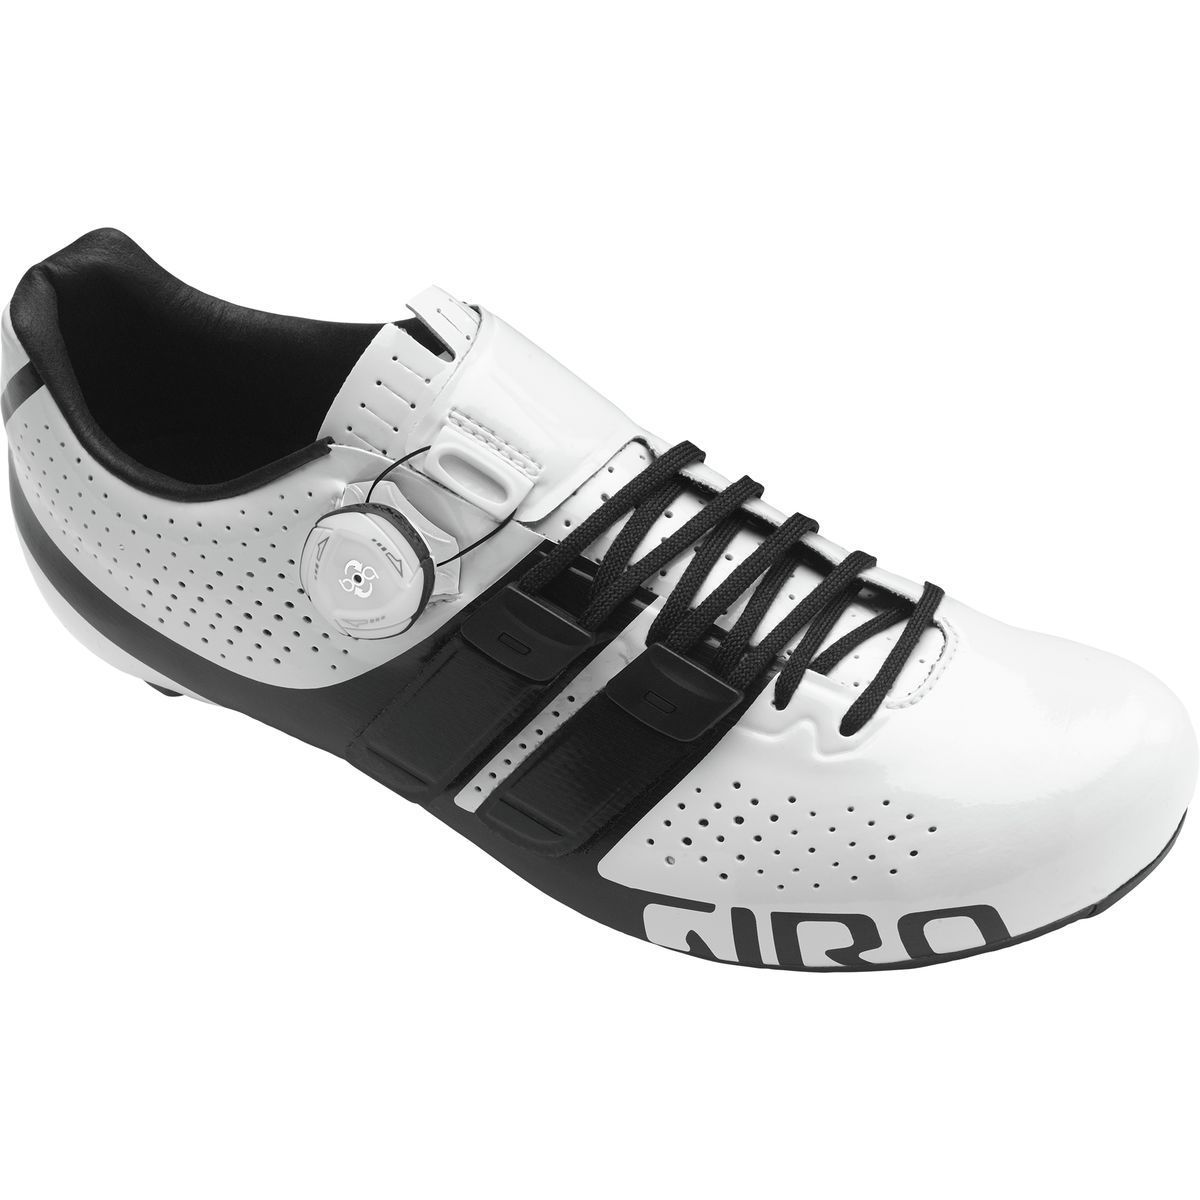 giro factor techlace road cycling shoe in black and white